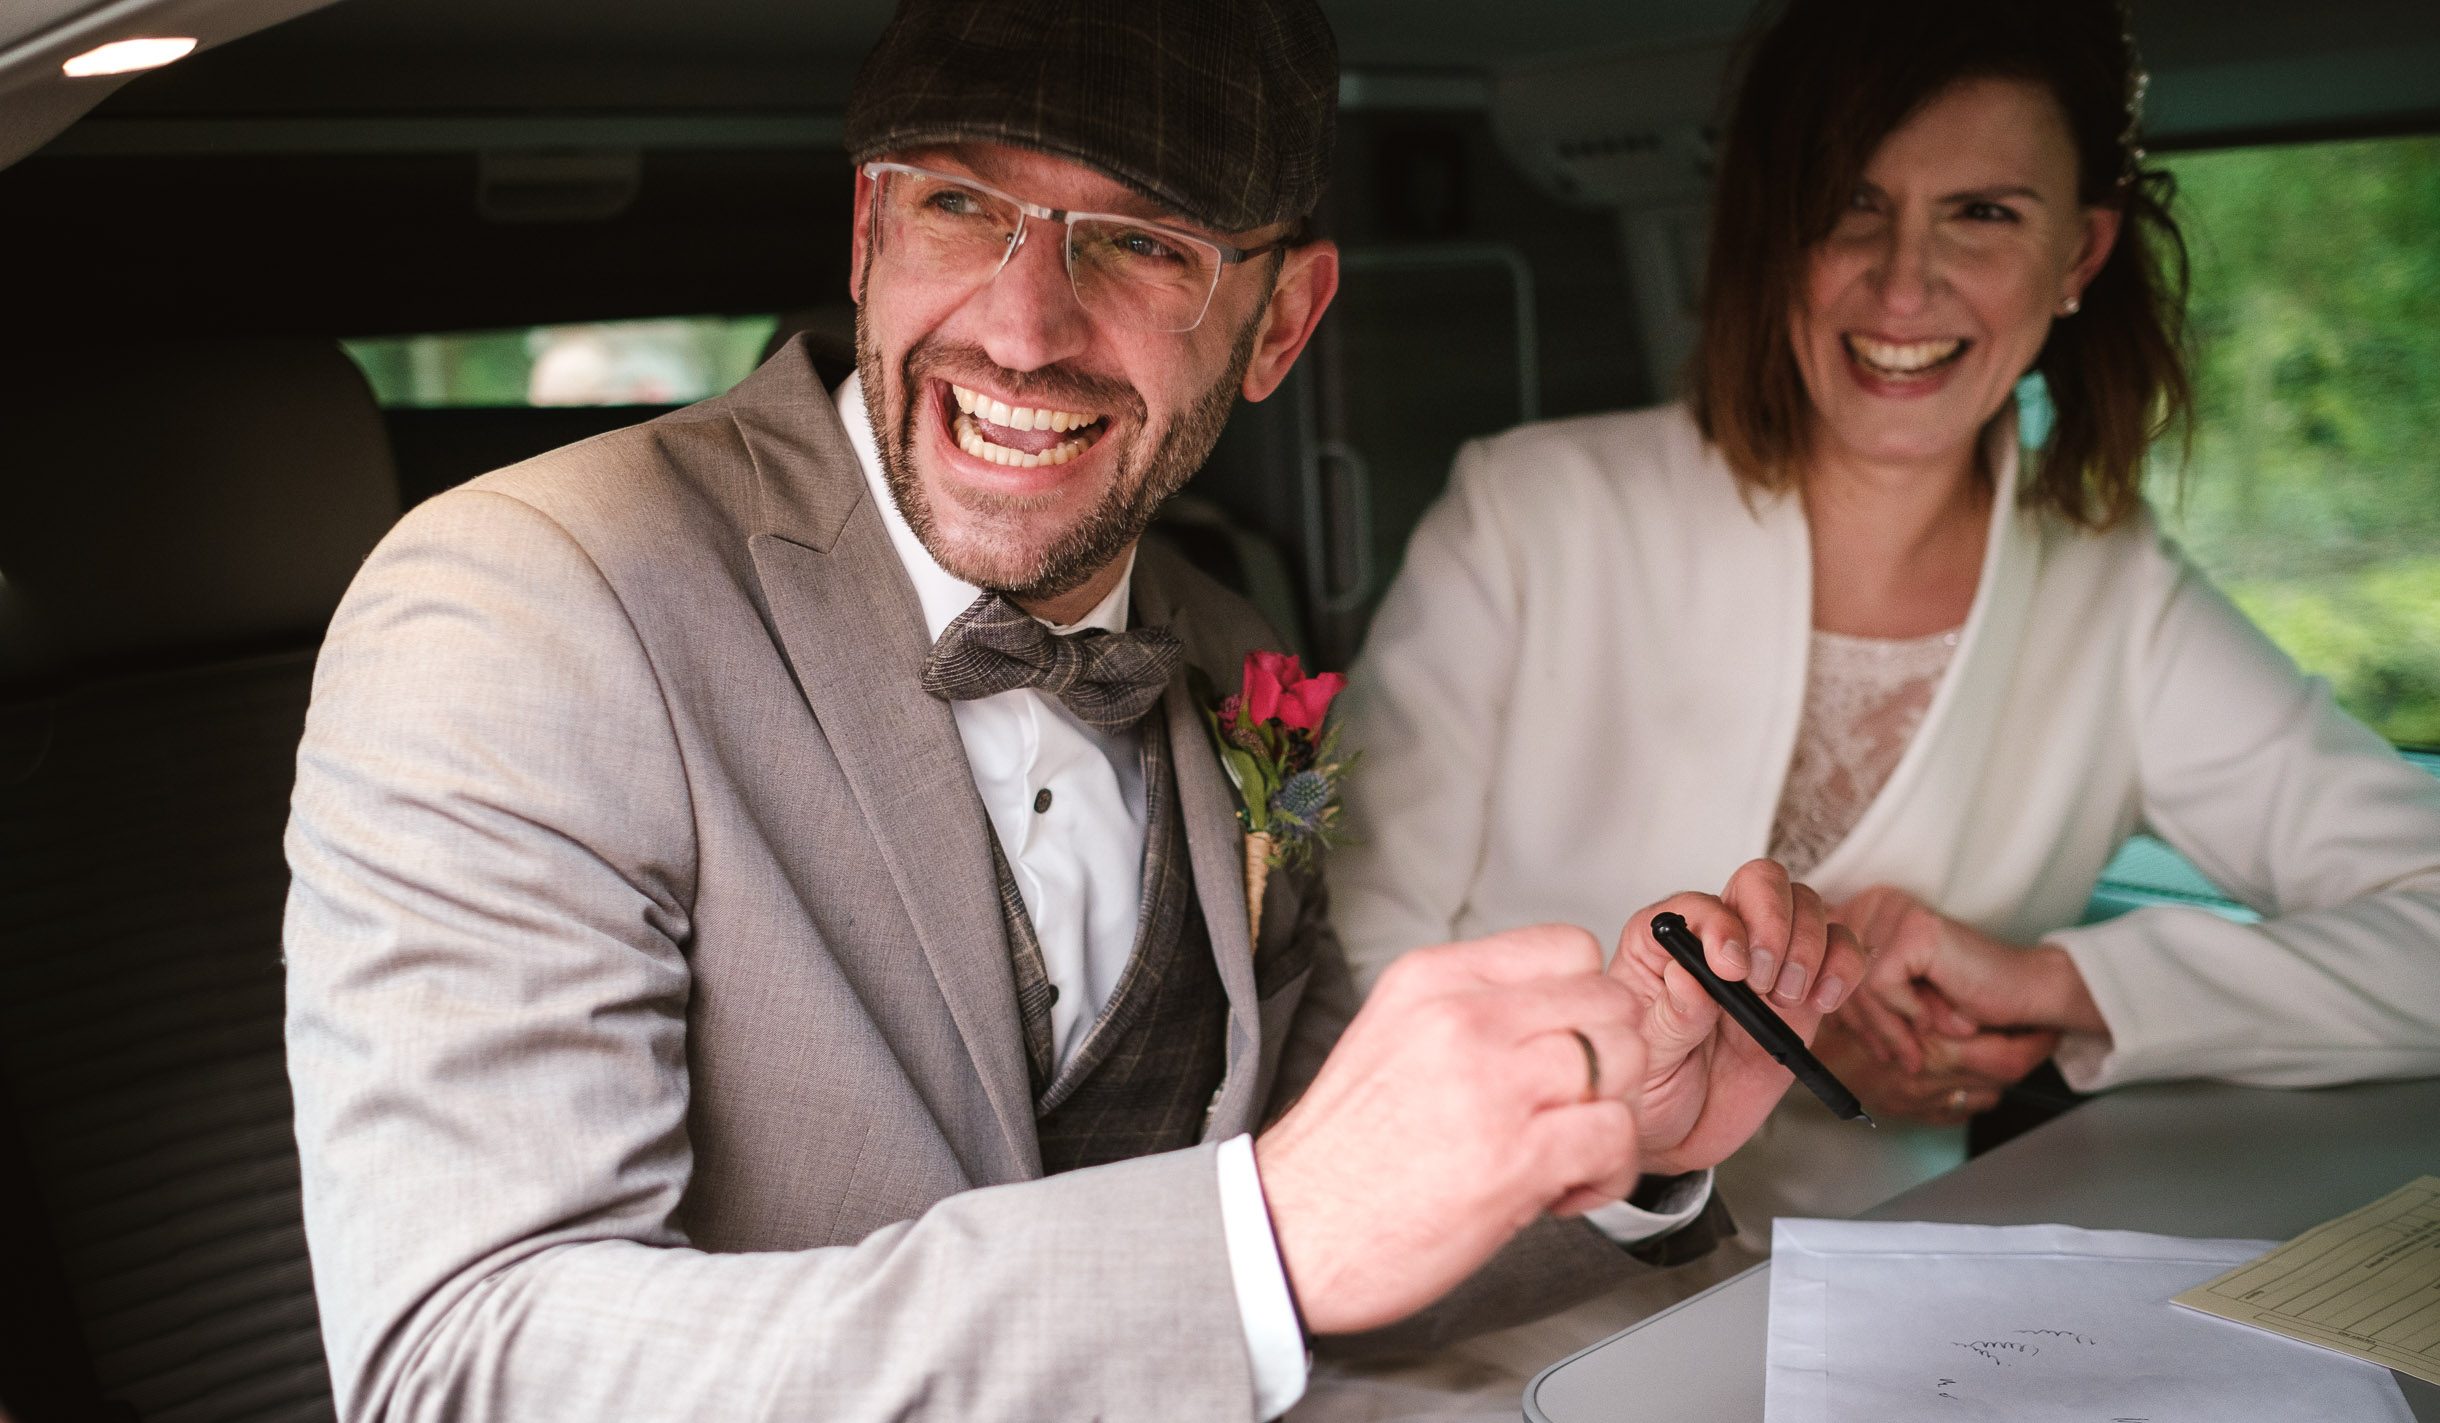 Scottish Elopements - The Legal stuff